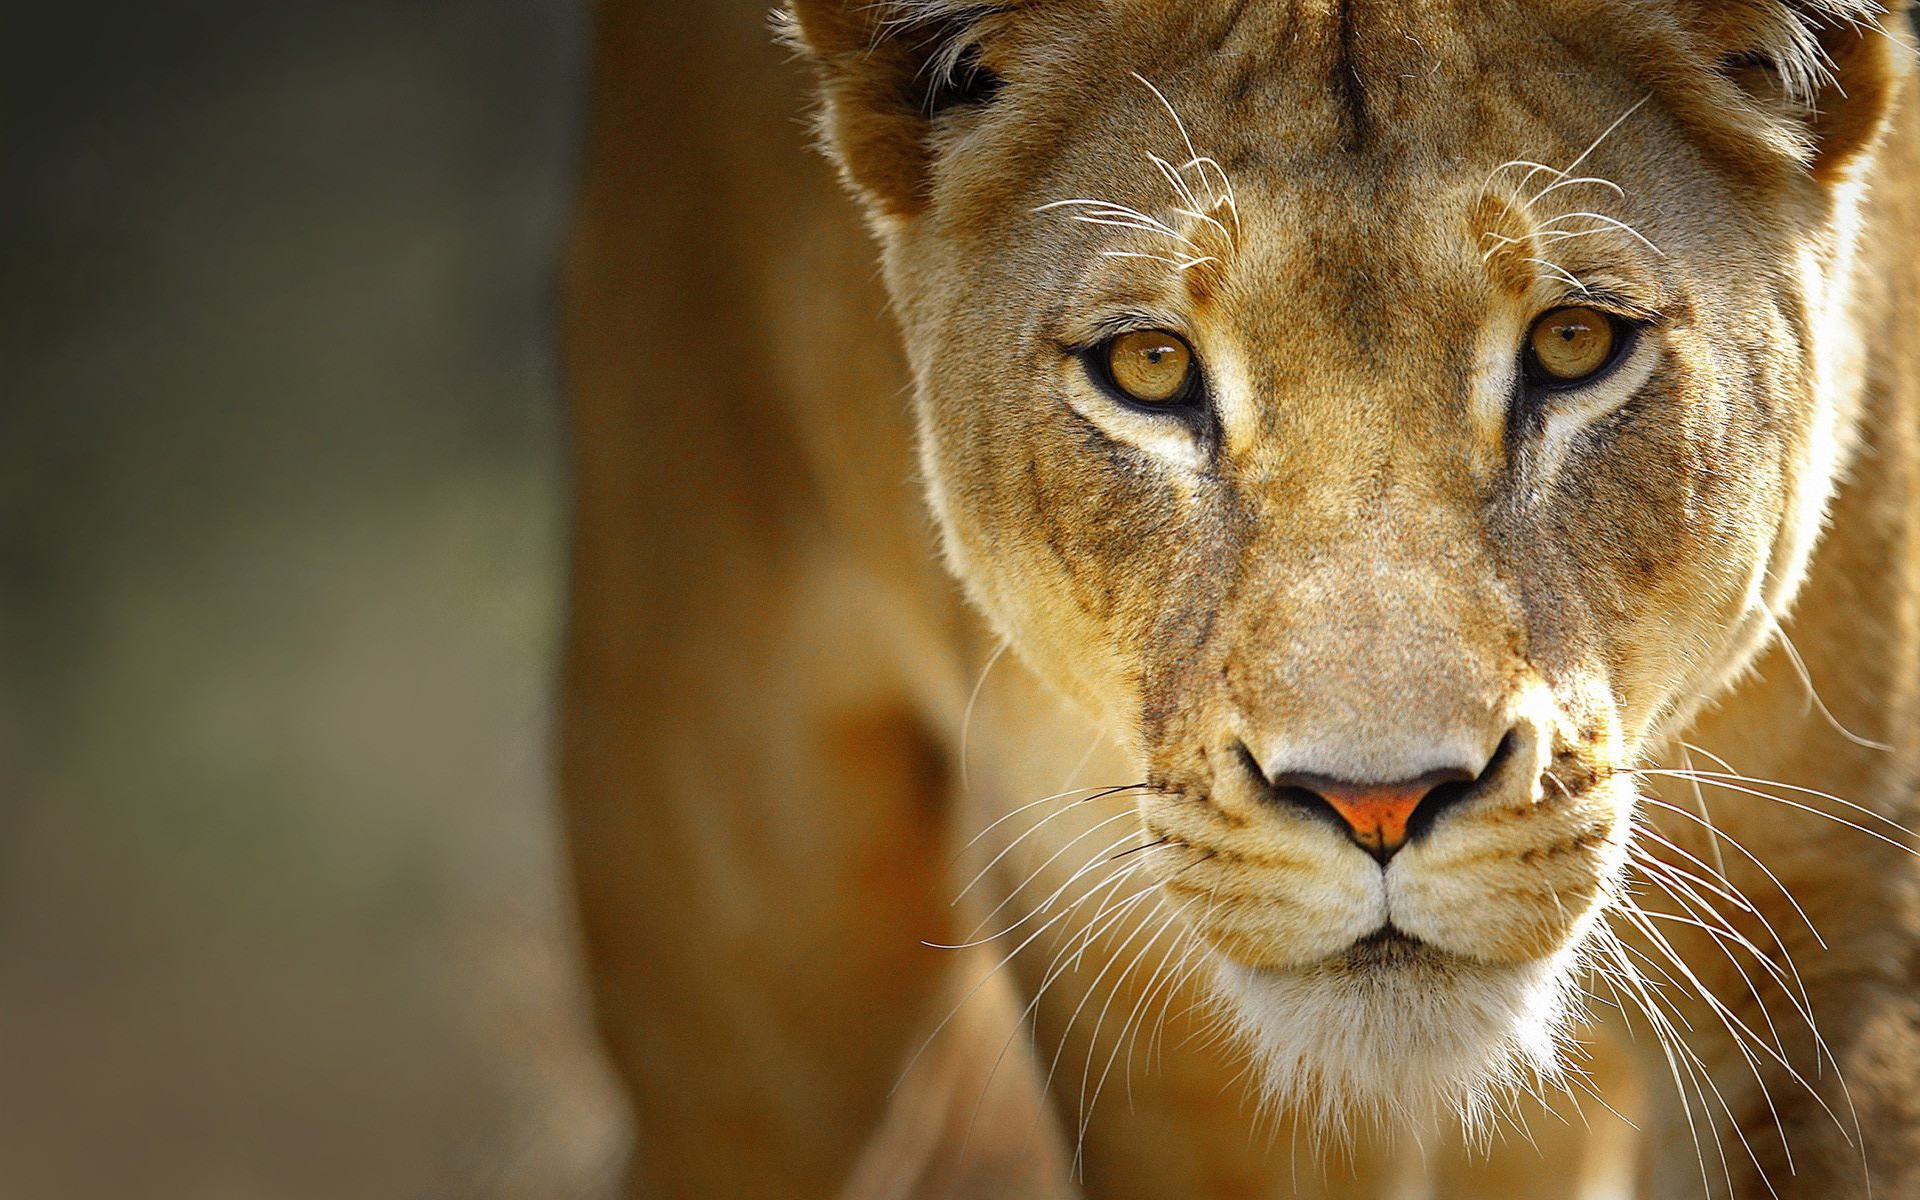 Close Up Nature Animals Lions Fresh New Hd Wallpaper 1920x1200px